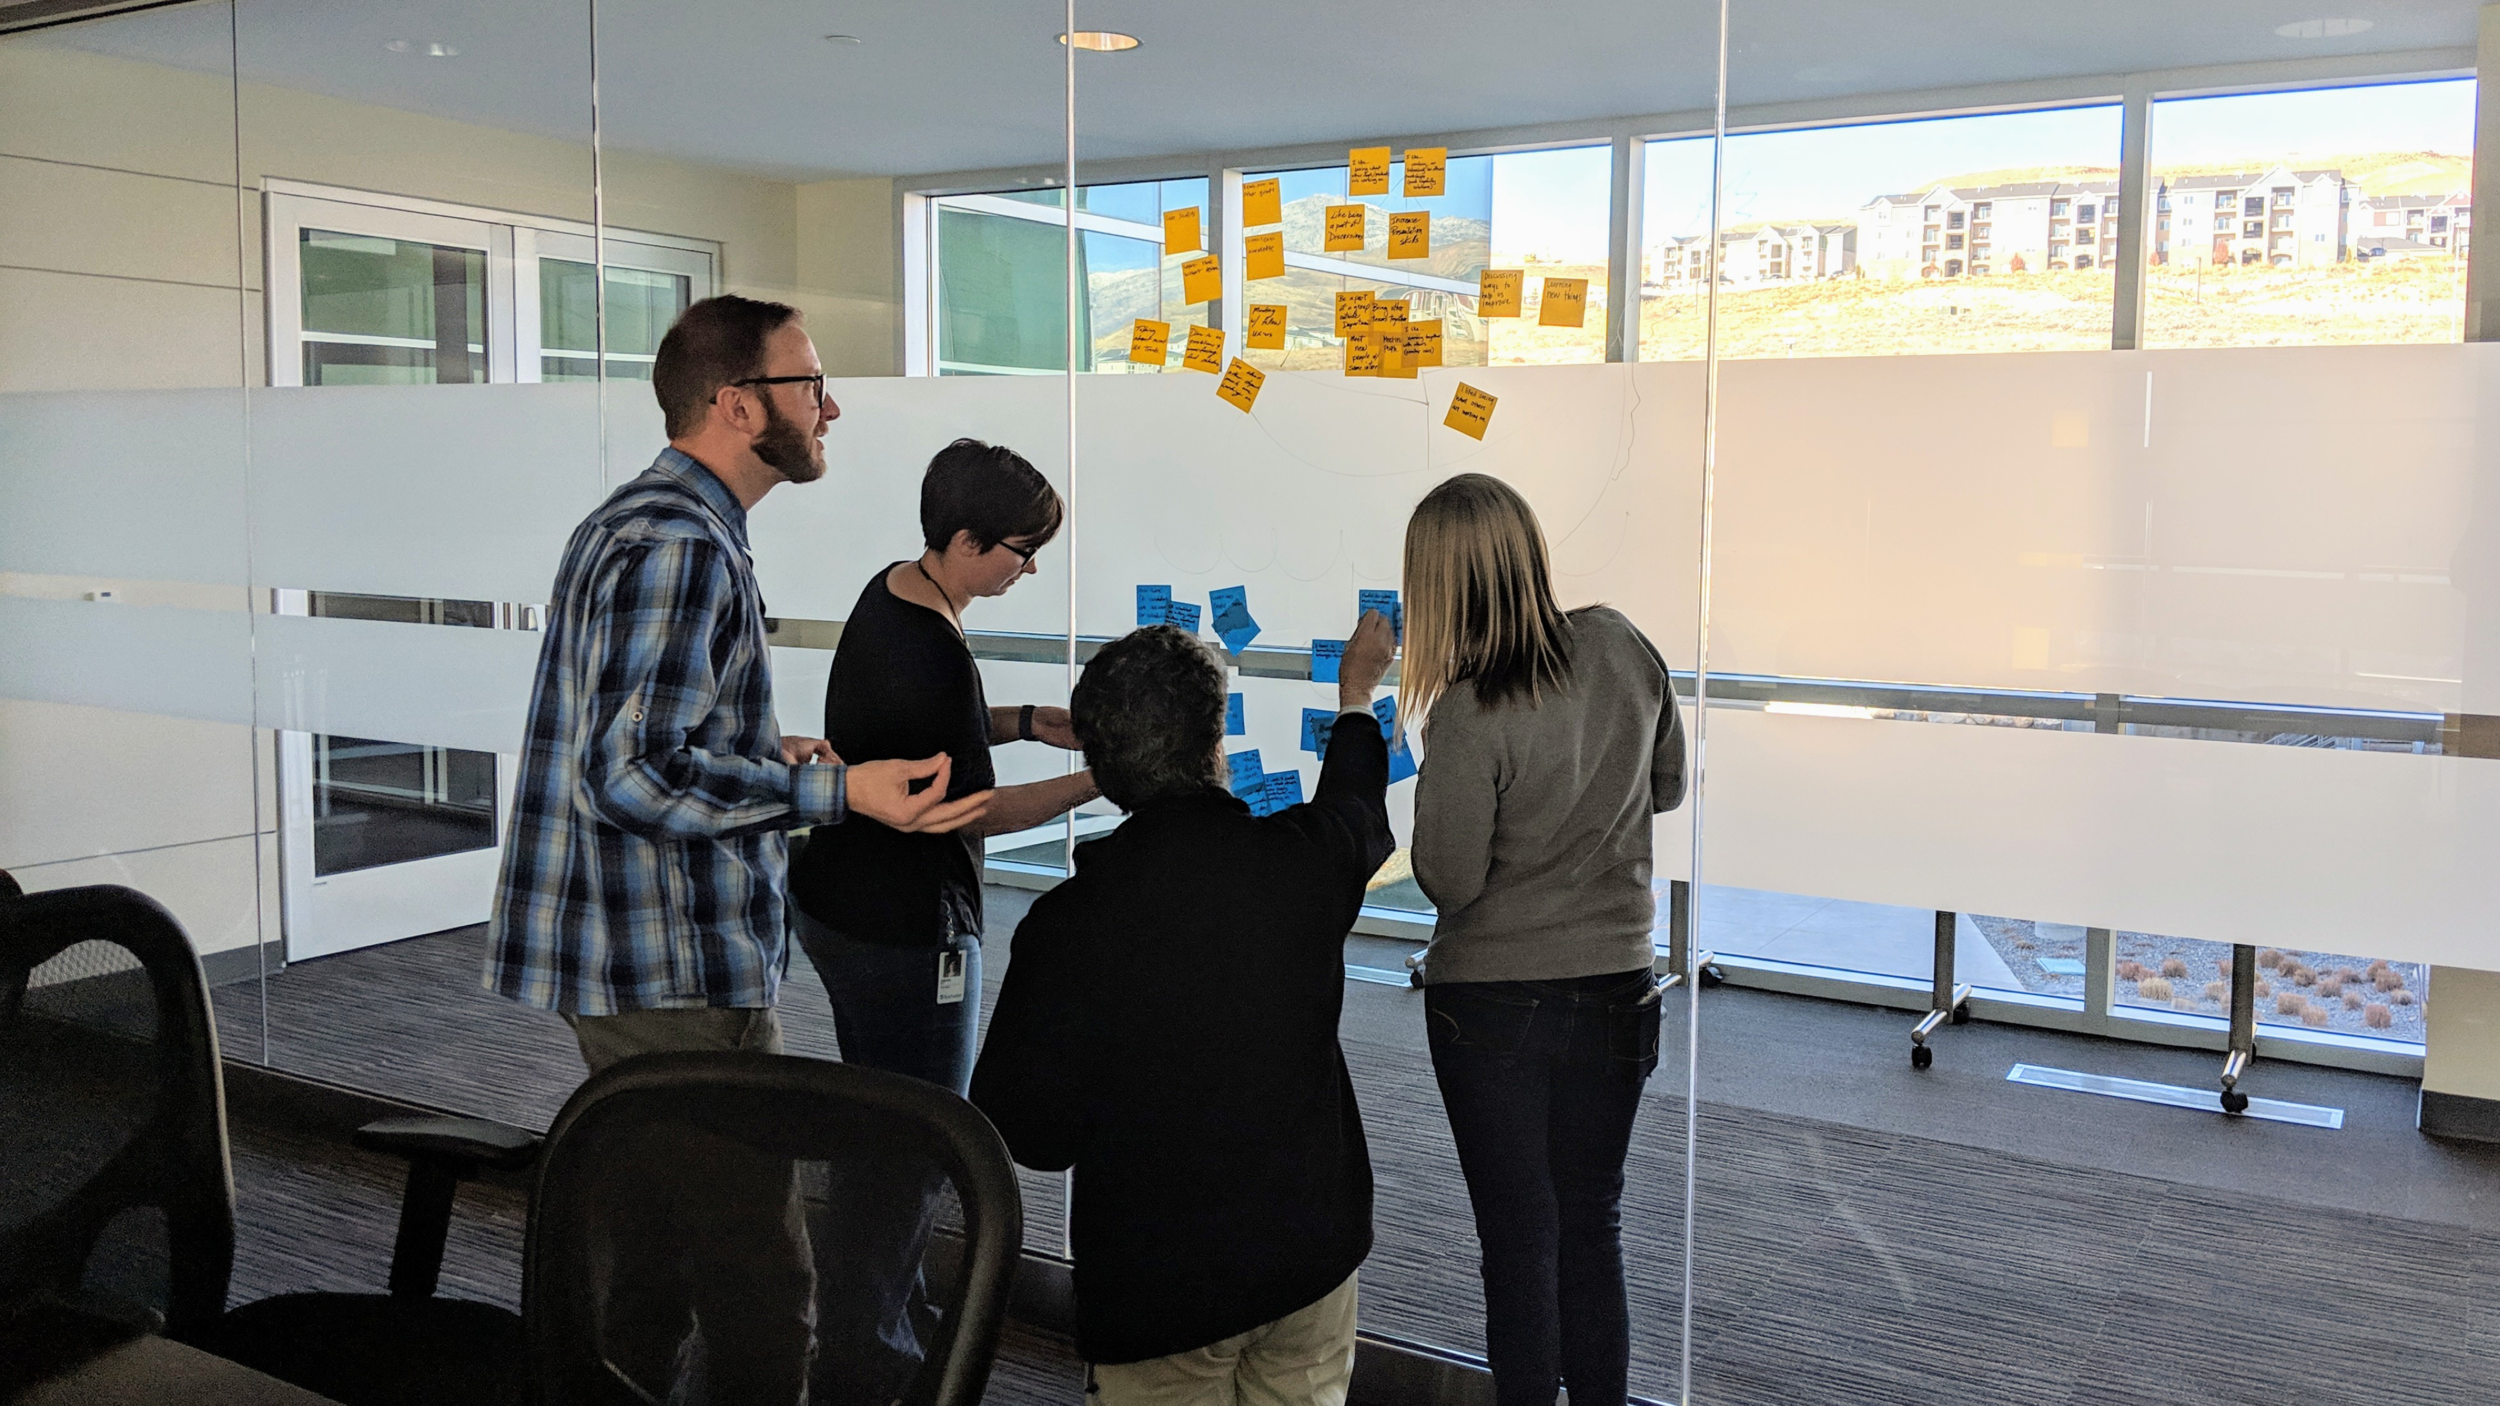 UX Guild - I had the pleasure of leading out our UX Guild for the latter half of 2017 and all of 2018. The Guild grew from a new initiative of 5 attendees to over 20 individuals attending from across the organization. The effect was dramatic, providing a common place to discuss standards and trends in the industry. We learned about designers in teams that we didn't even knew existed, and knowledge of design increased as Product Managers, Support Technicians, and Developers came and shared their insights.